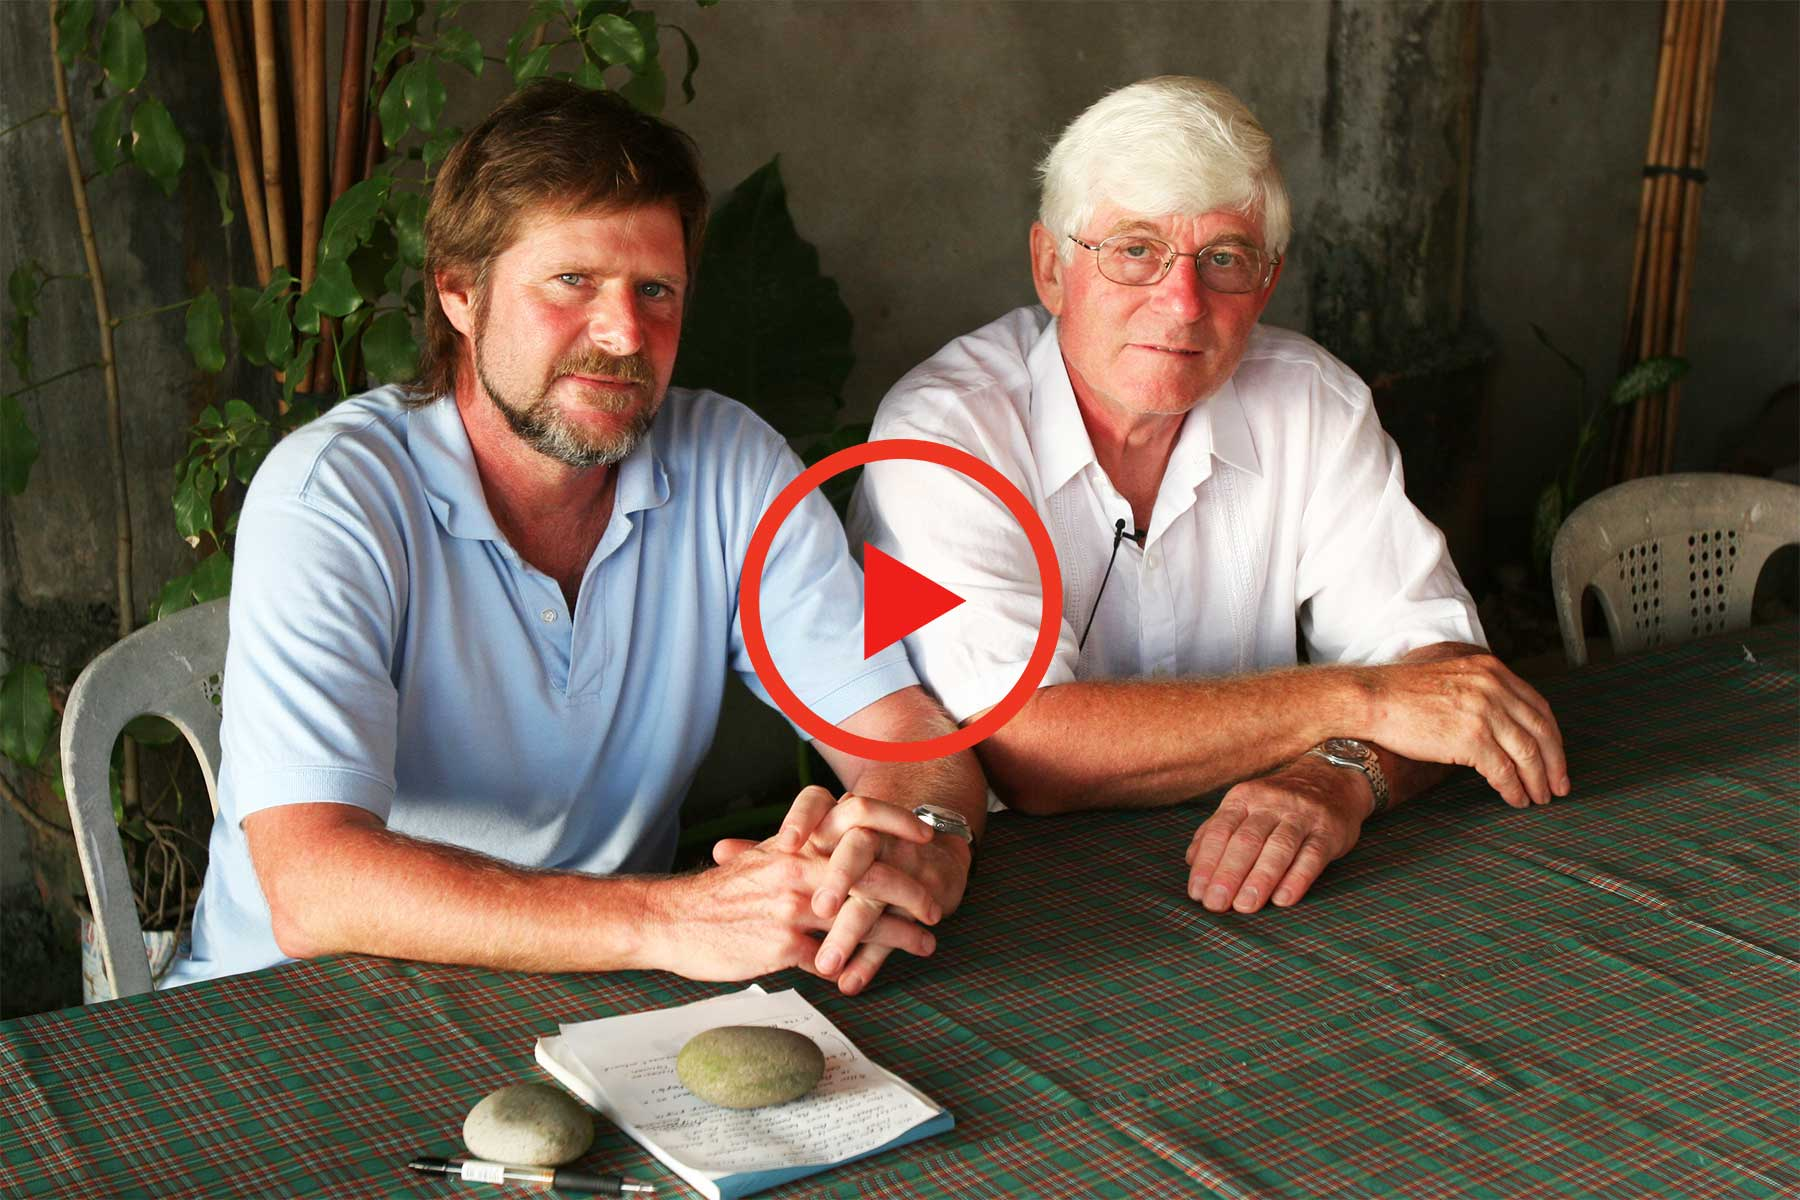 Steven A Martin (left) and Peter Bellwood (right) - Batanes Islands - Archaeological Research 2006